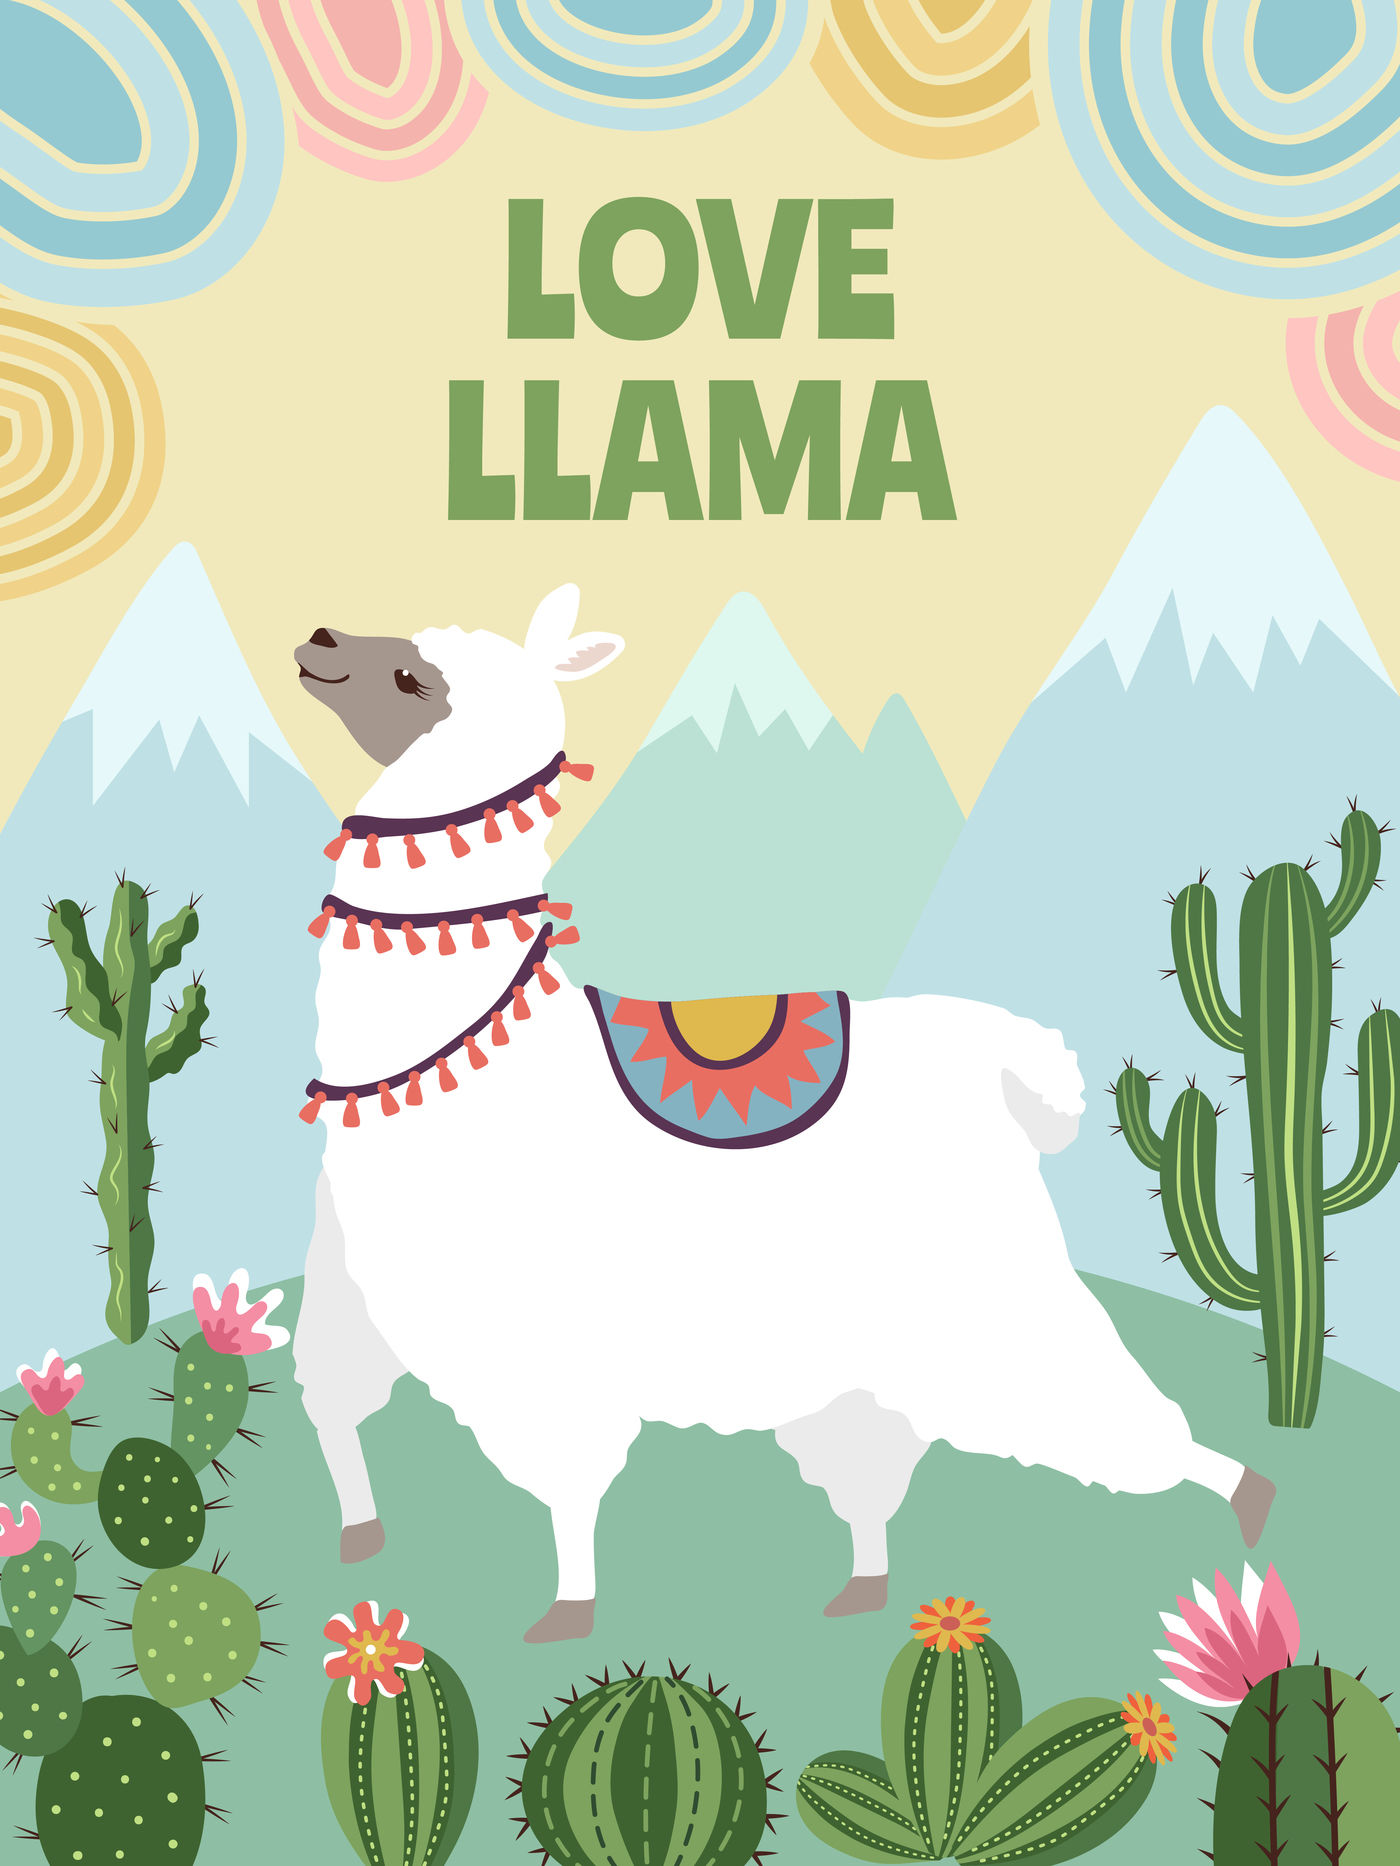 Background vector picture of llama, mountains and cactus